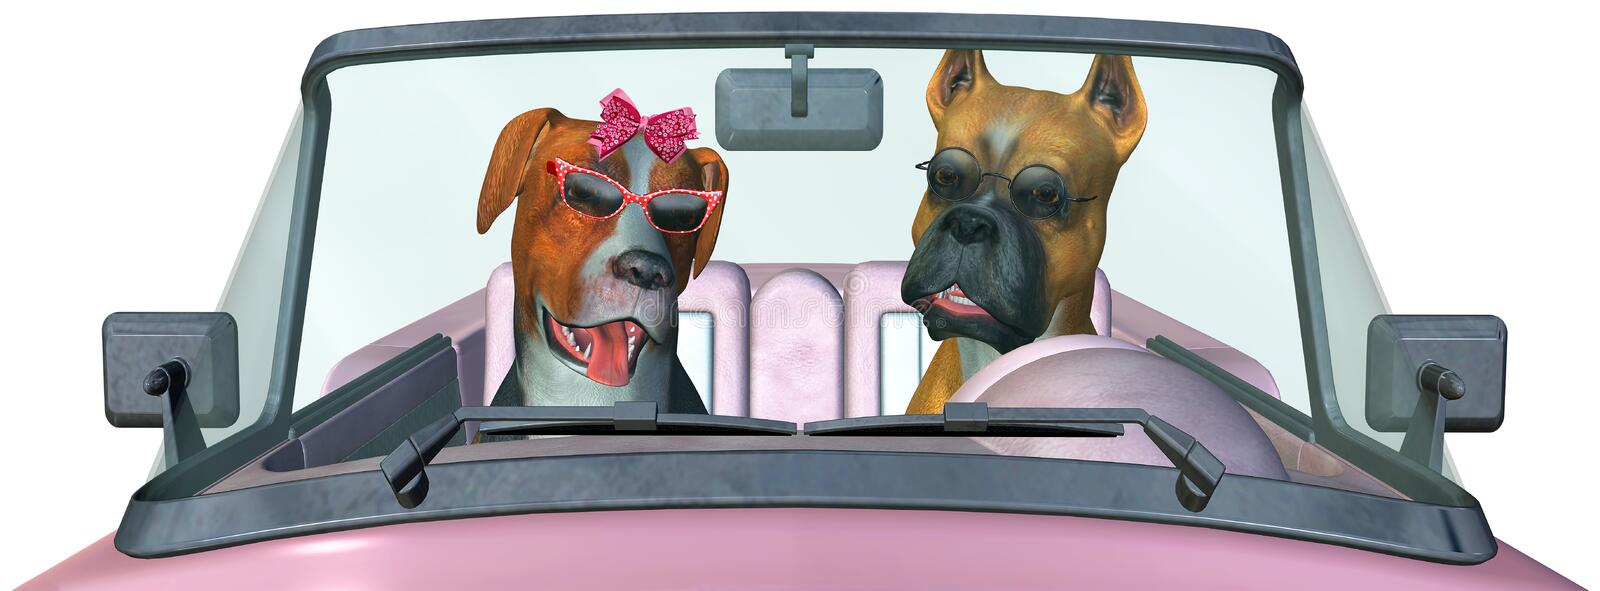 Funny Travel Dog, Vacation, Isolated royalty free illustration